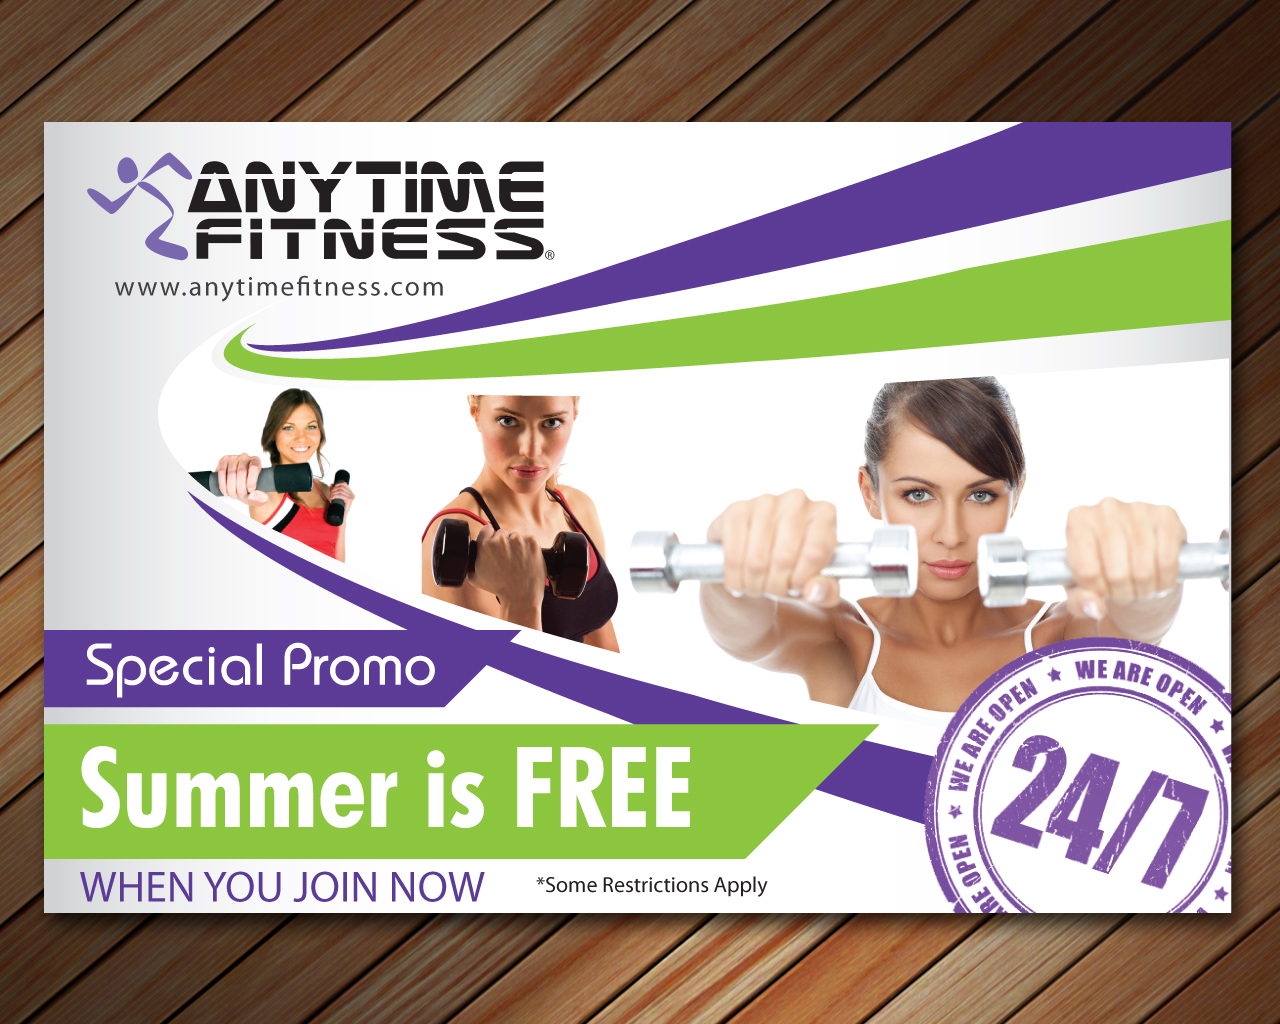 elegant playful fitness flyer design for anytime fitness by sbss